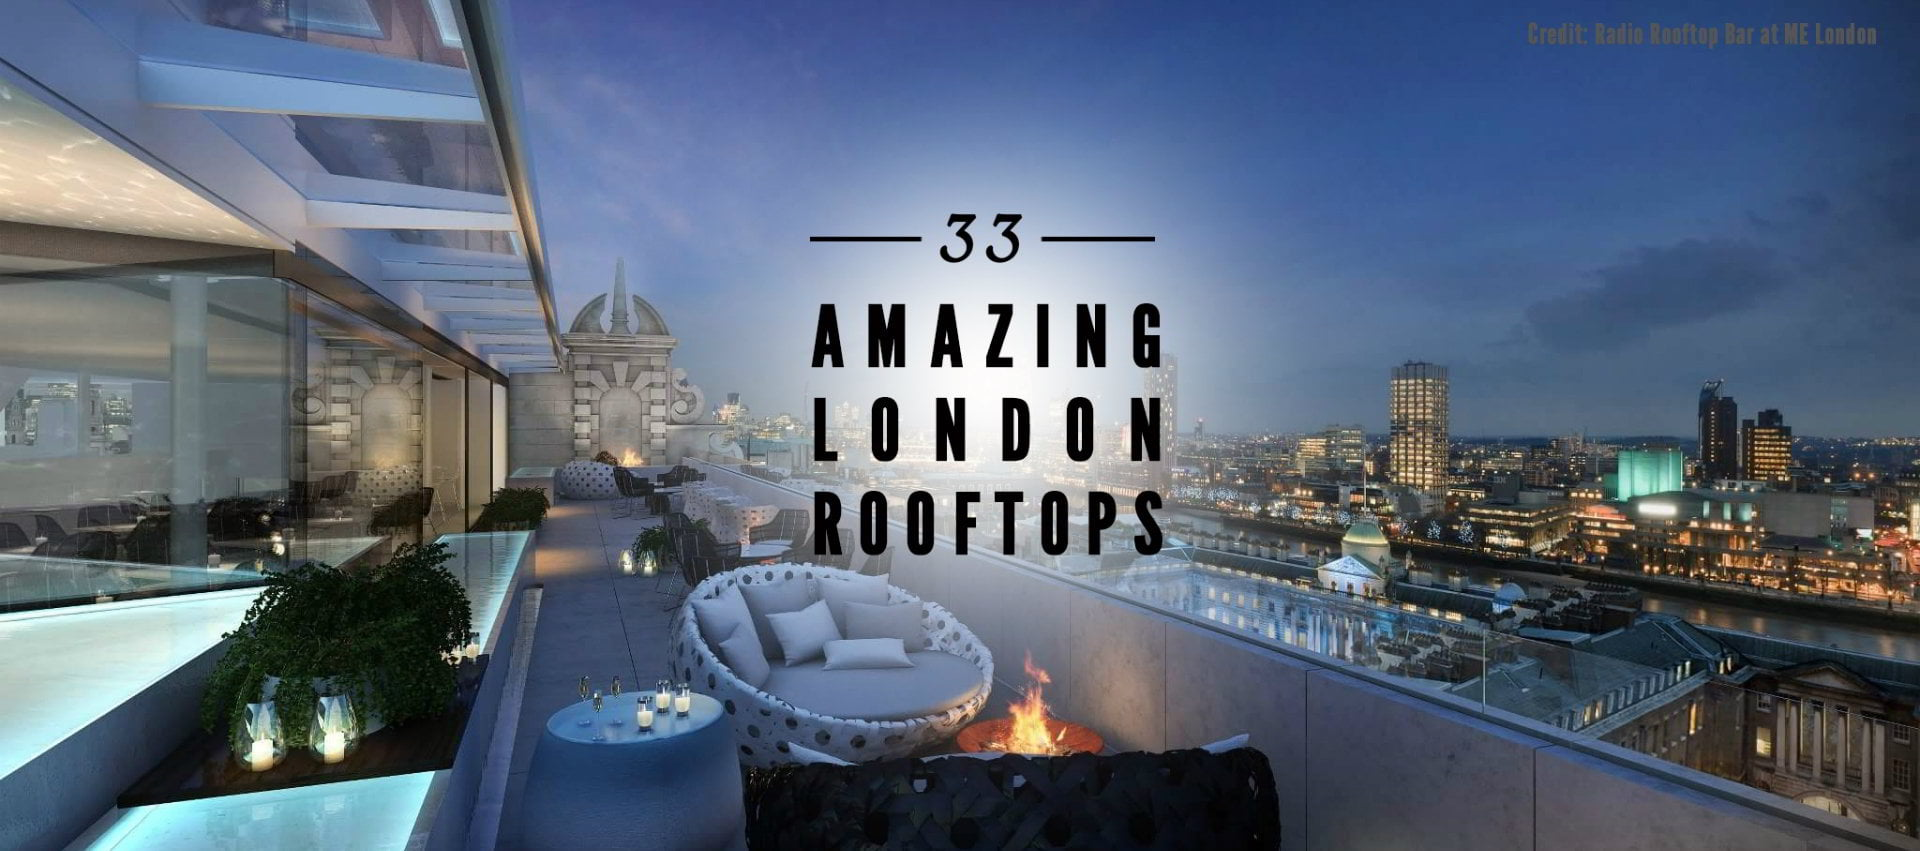 Best Rooftop Bars In London - London Bars Review